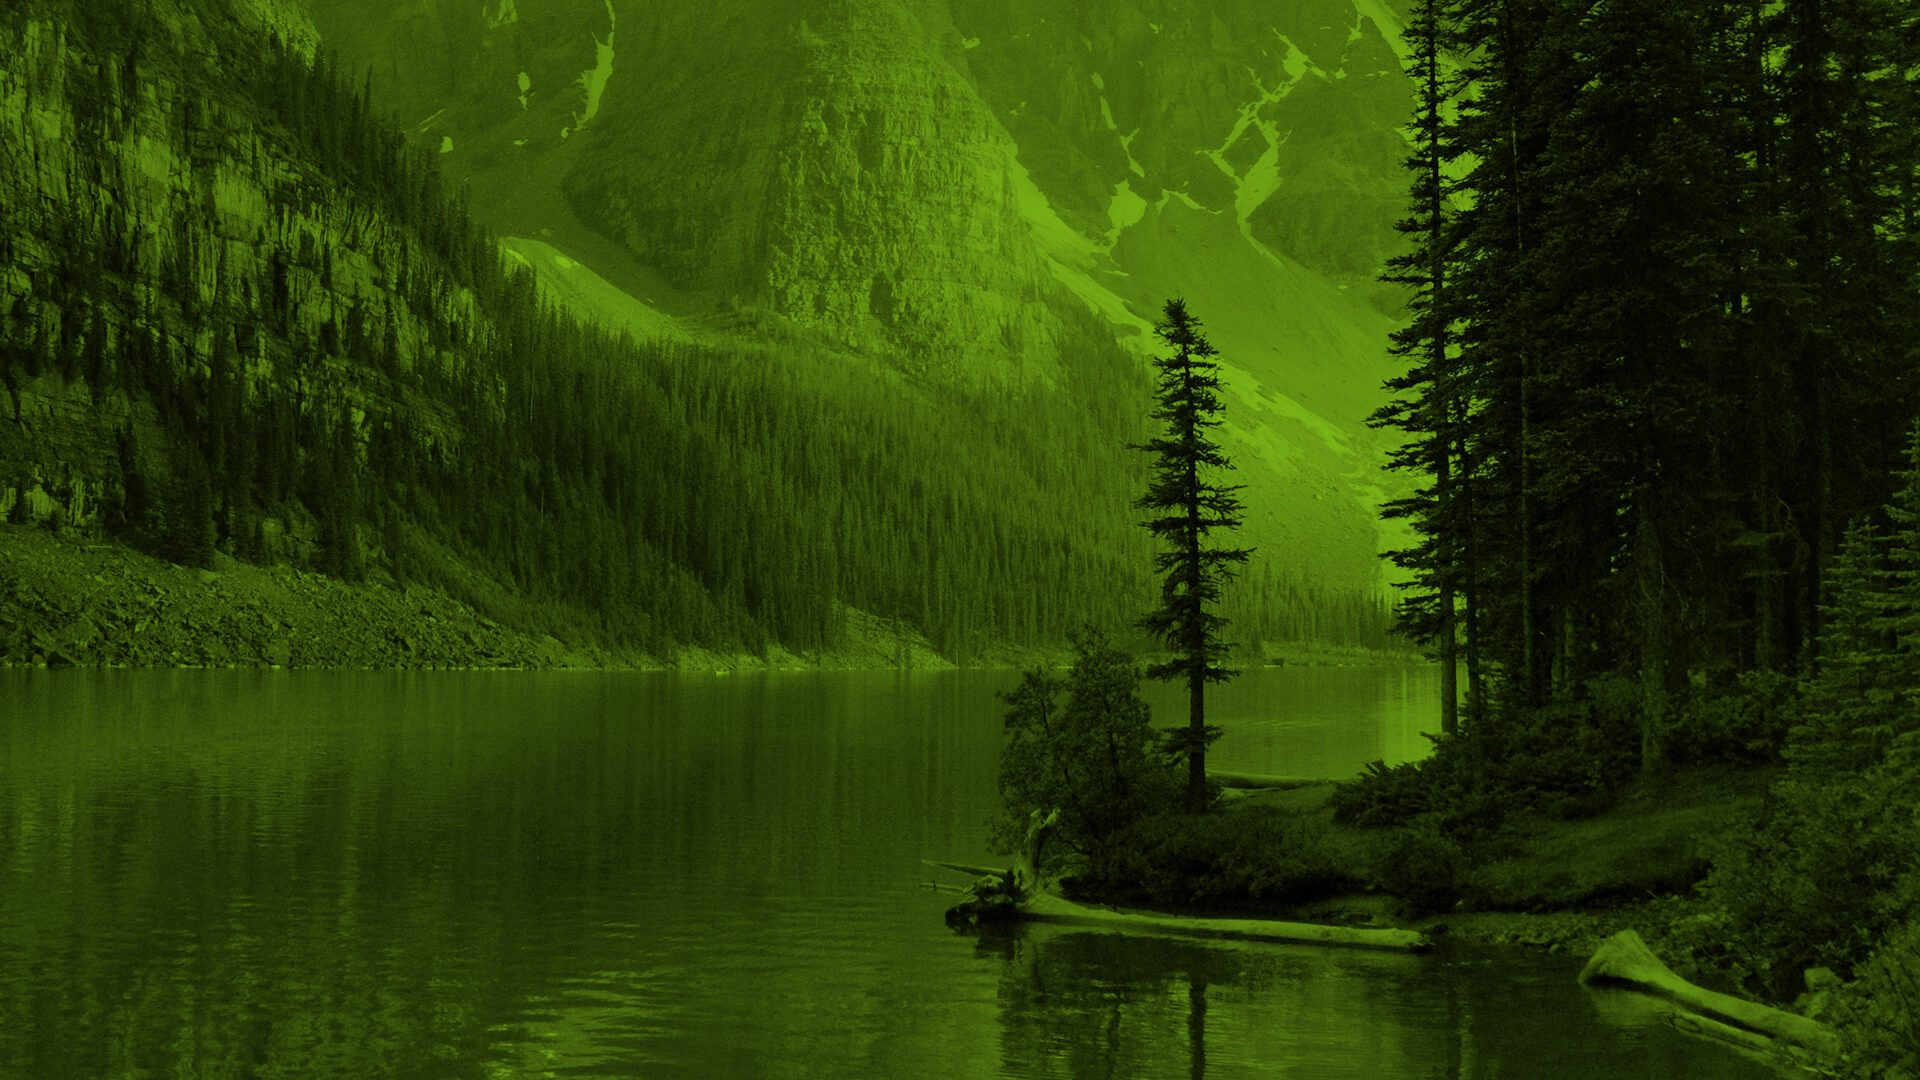 Scenic view of a lake surrounded by dense forest and soaring mountains.